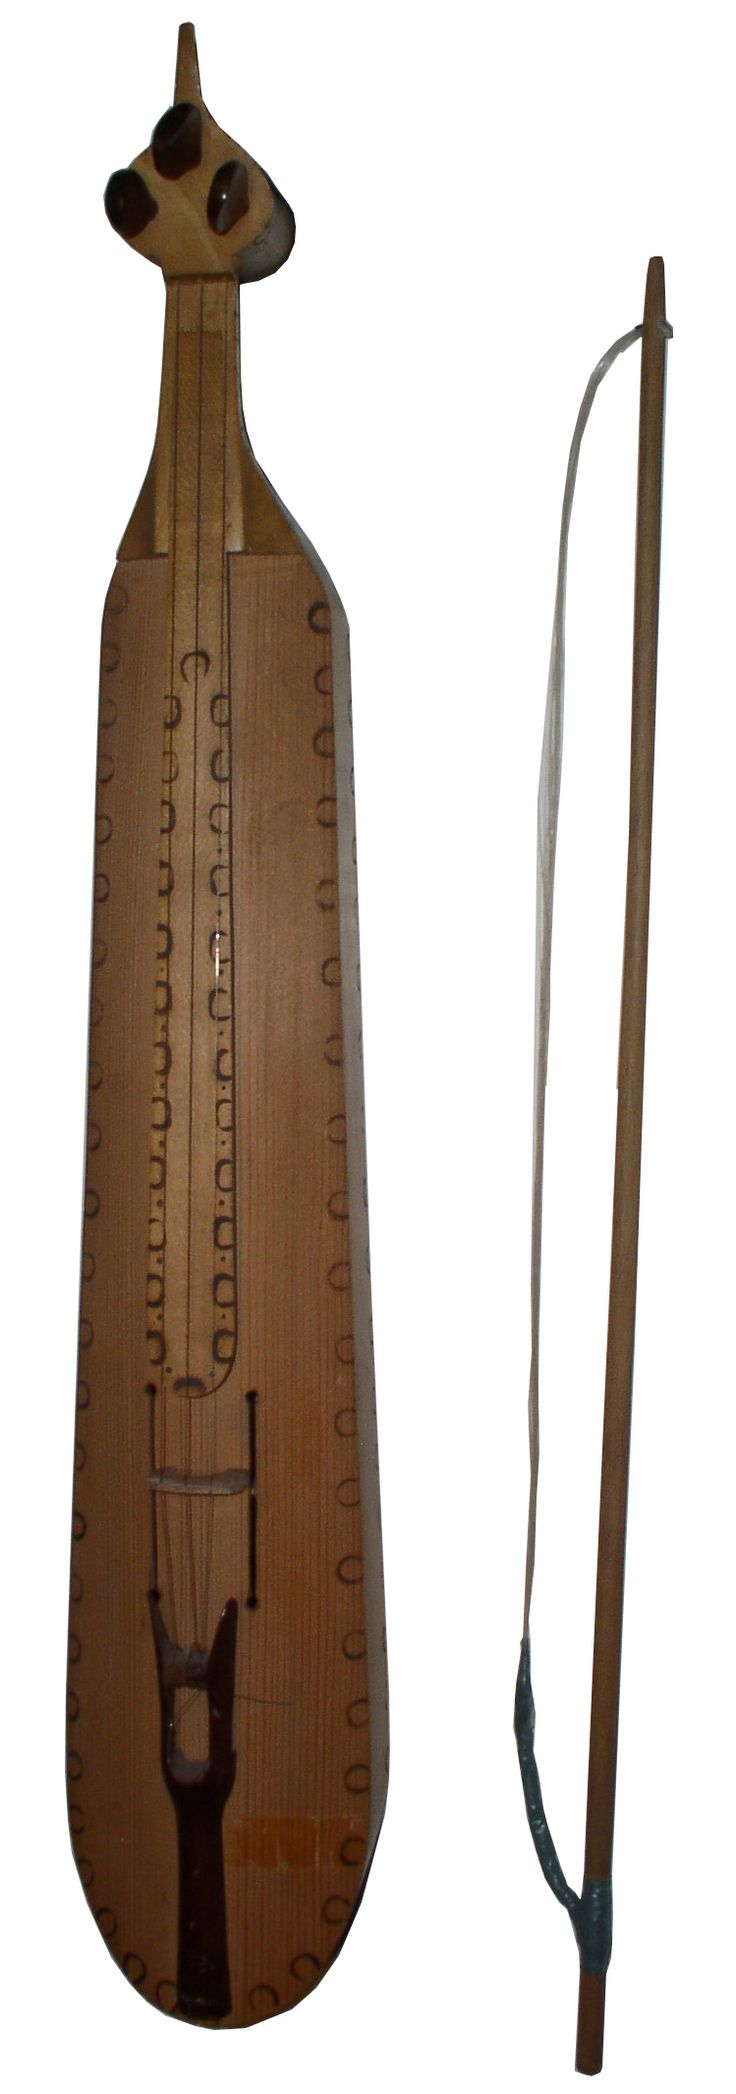 """Kemence is a bowed string instrument native of Persia, used in traditional classical music of Iran, Armenia, Azerbaijan, Uzbekistan, Turkmenistan. Kashmir is known as """"saz-i Kashmir"""" (""""saz Kashmir""""). Traditionally, kamanchí has three strings of silk, but modern has four metal strings while tuning pegs are ivory.  Horsehair bow. As a tourist instrument has no fixed length, but professionals use Kemencés 56 cm long. (Mt)"""